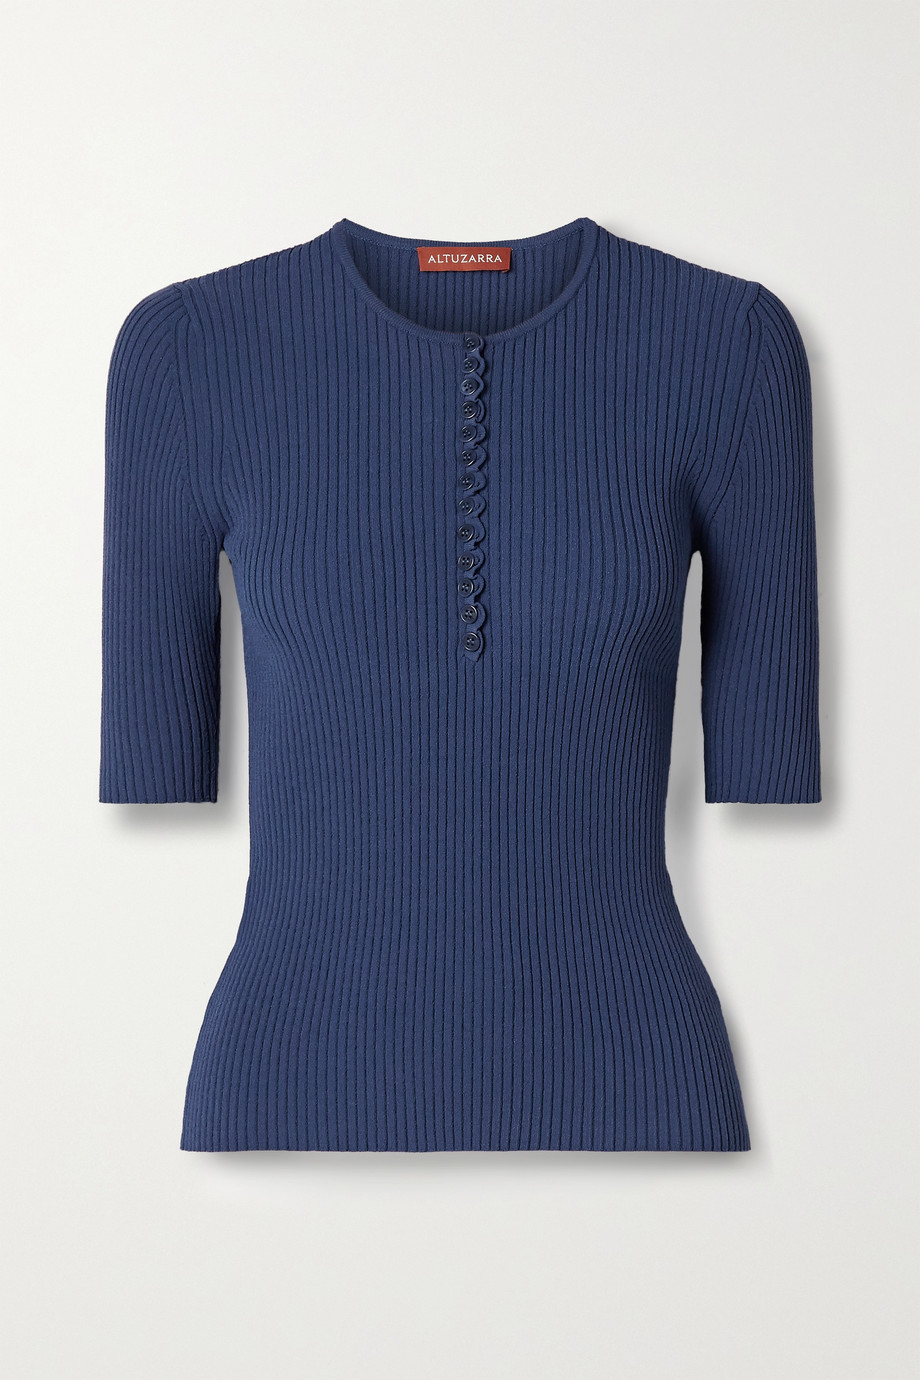 Altuzarra Dory ribbed-knit top